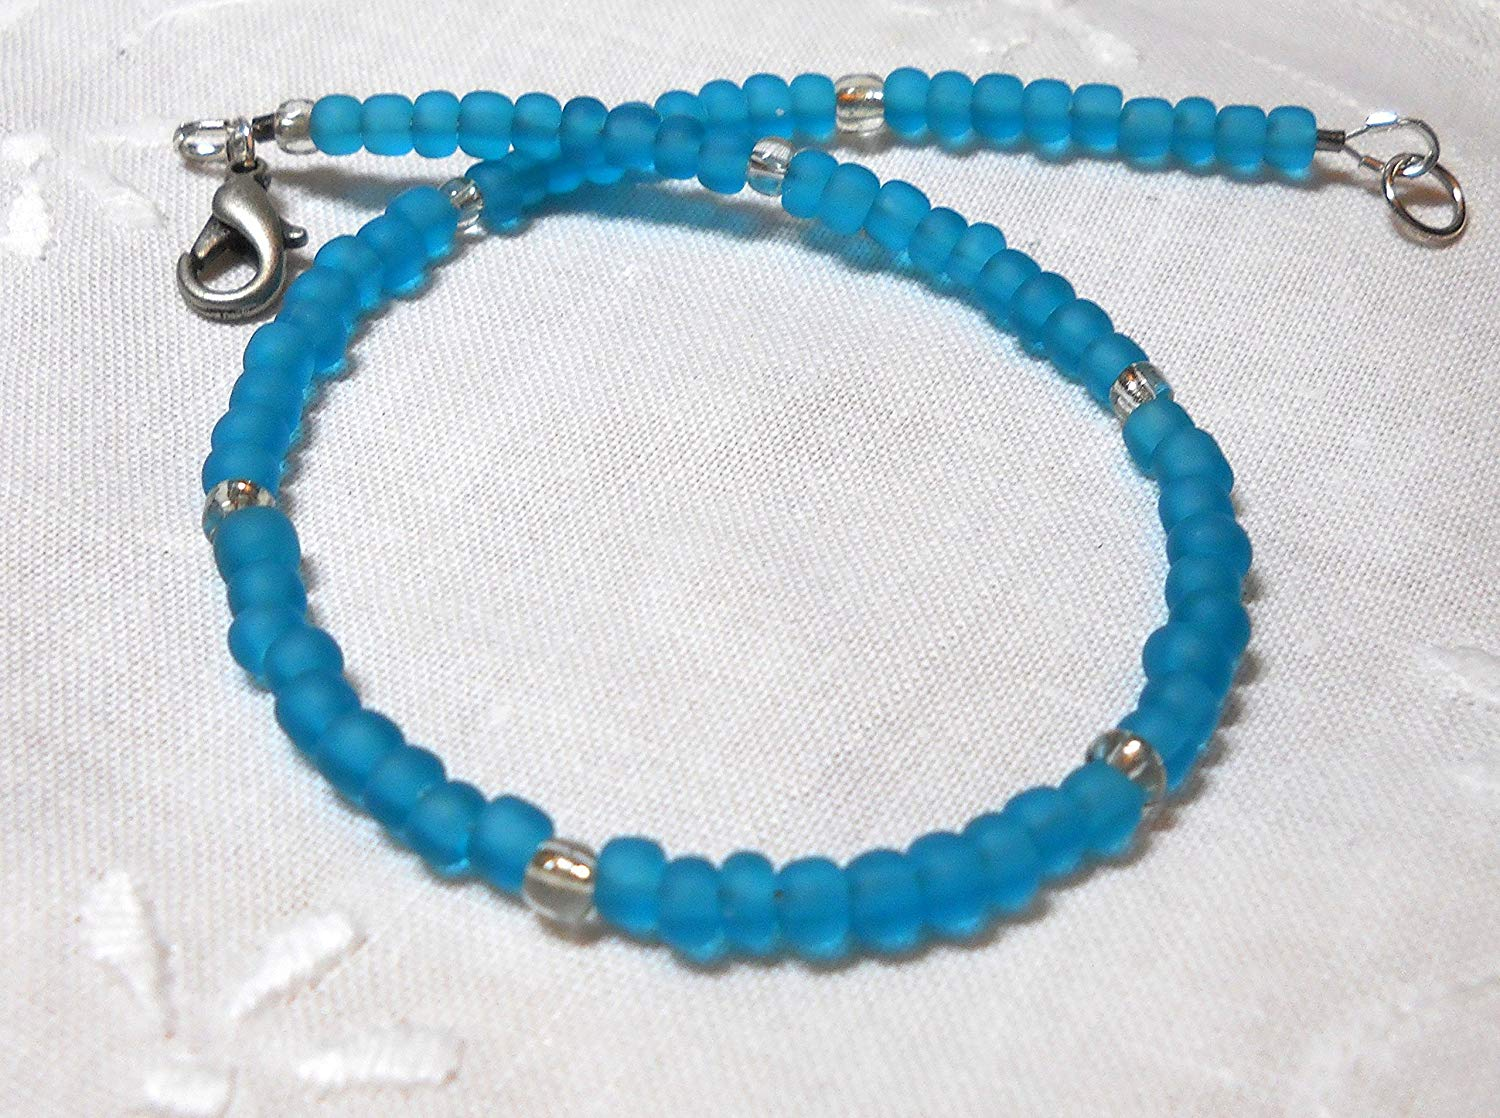 Ankle bracelet, beaded anklet, teal blue seed beads ankle bracelet, beach anklet, wedding anklet, something blue beach wedding bride anklet, handmade jewelry, romantic gift, beach jewelry